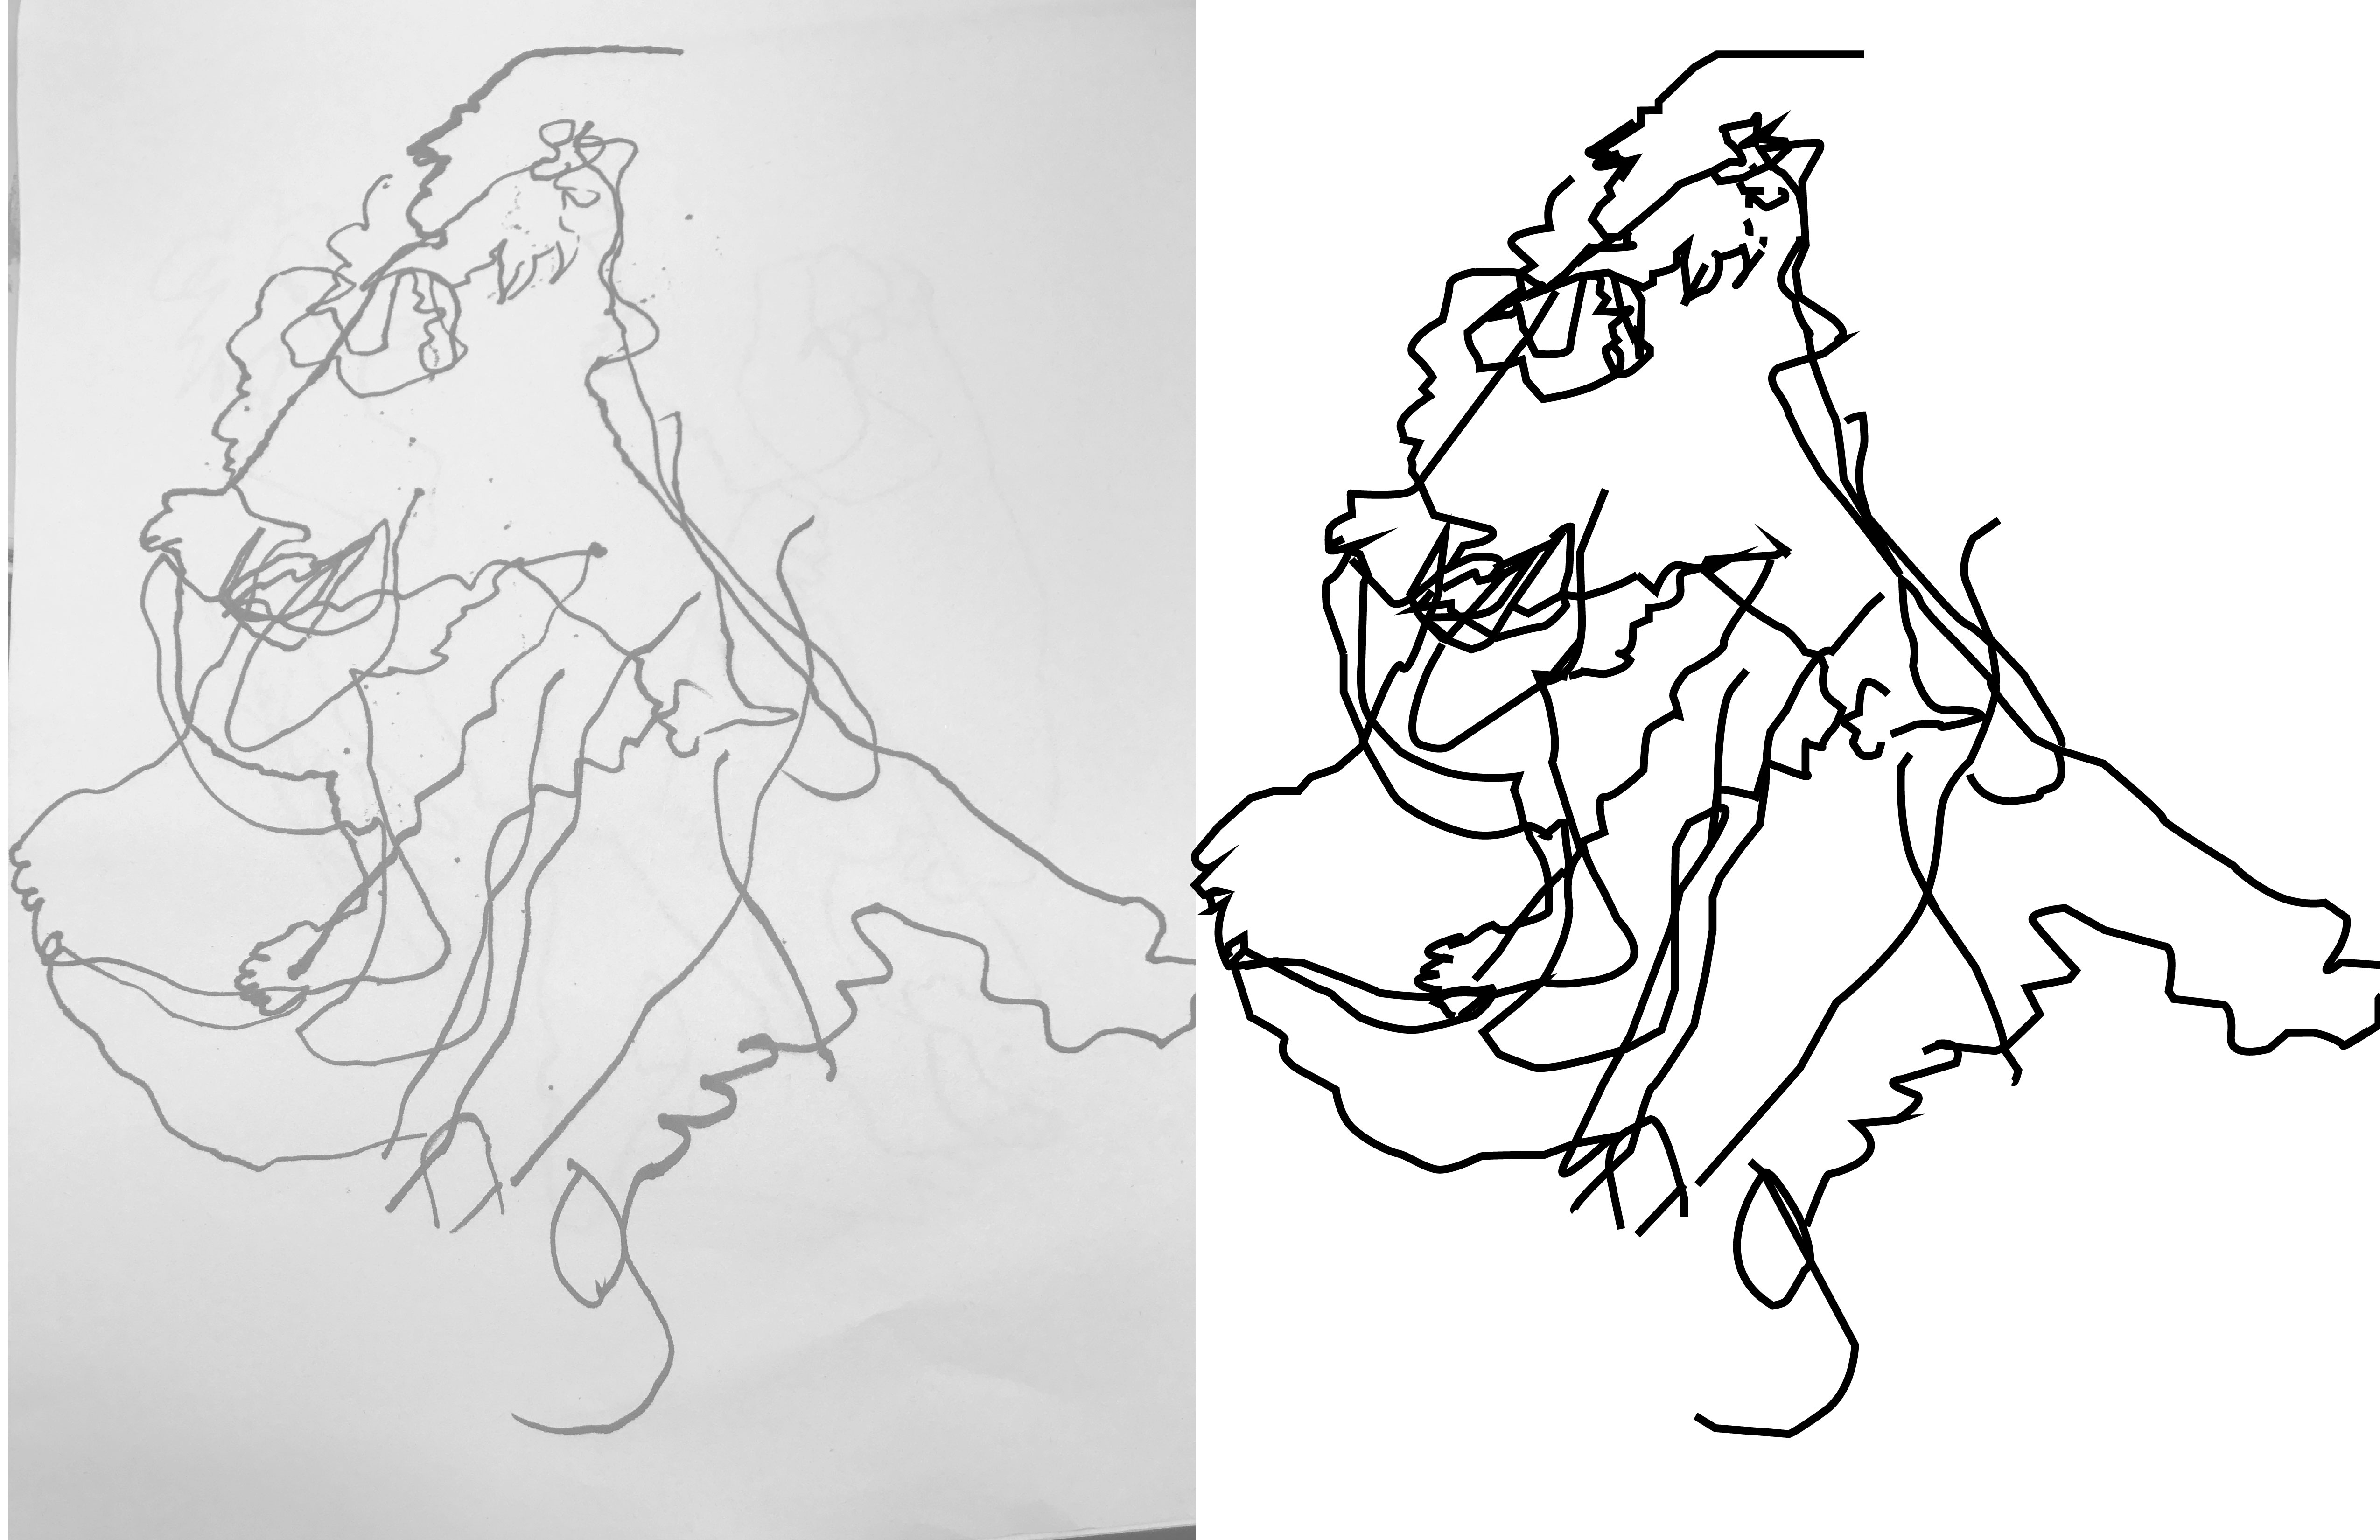 Redrawing Drawings In Illustrator (Gesture and Blind Contour Drawings)